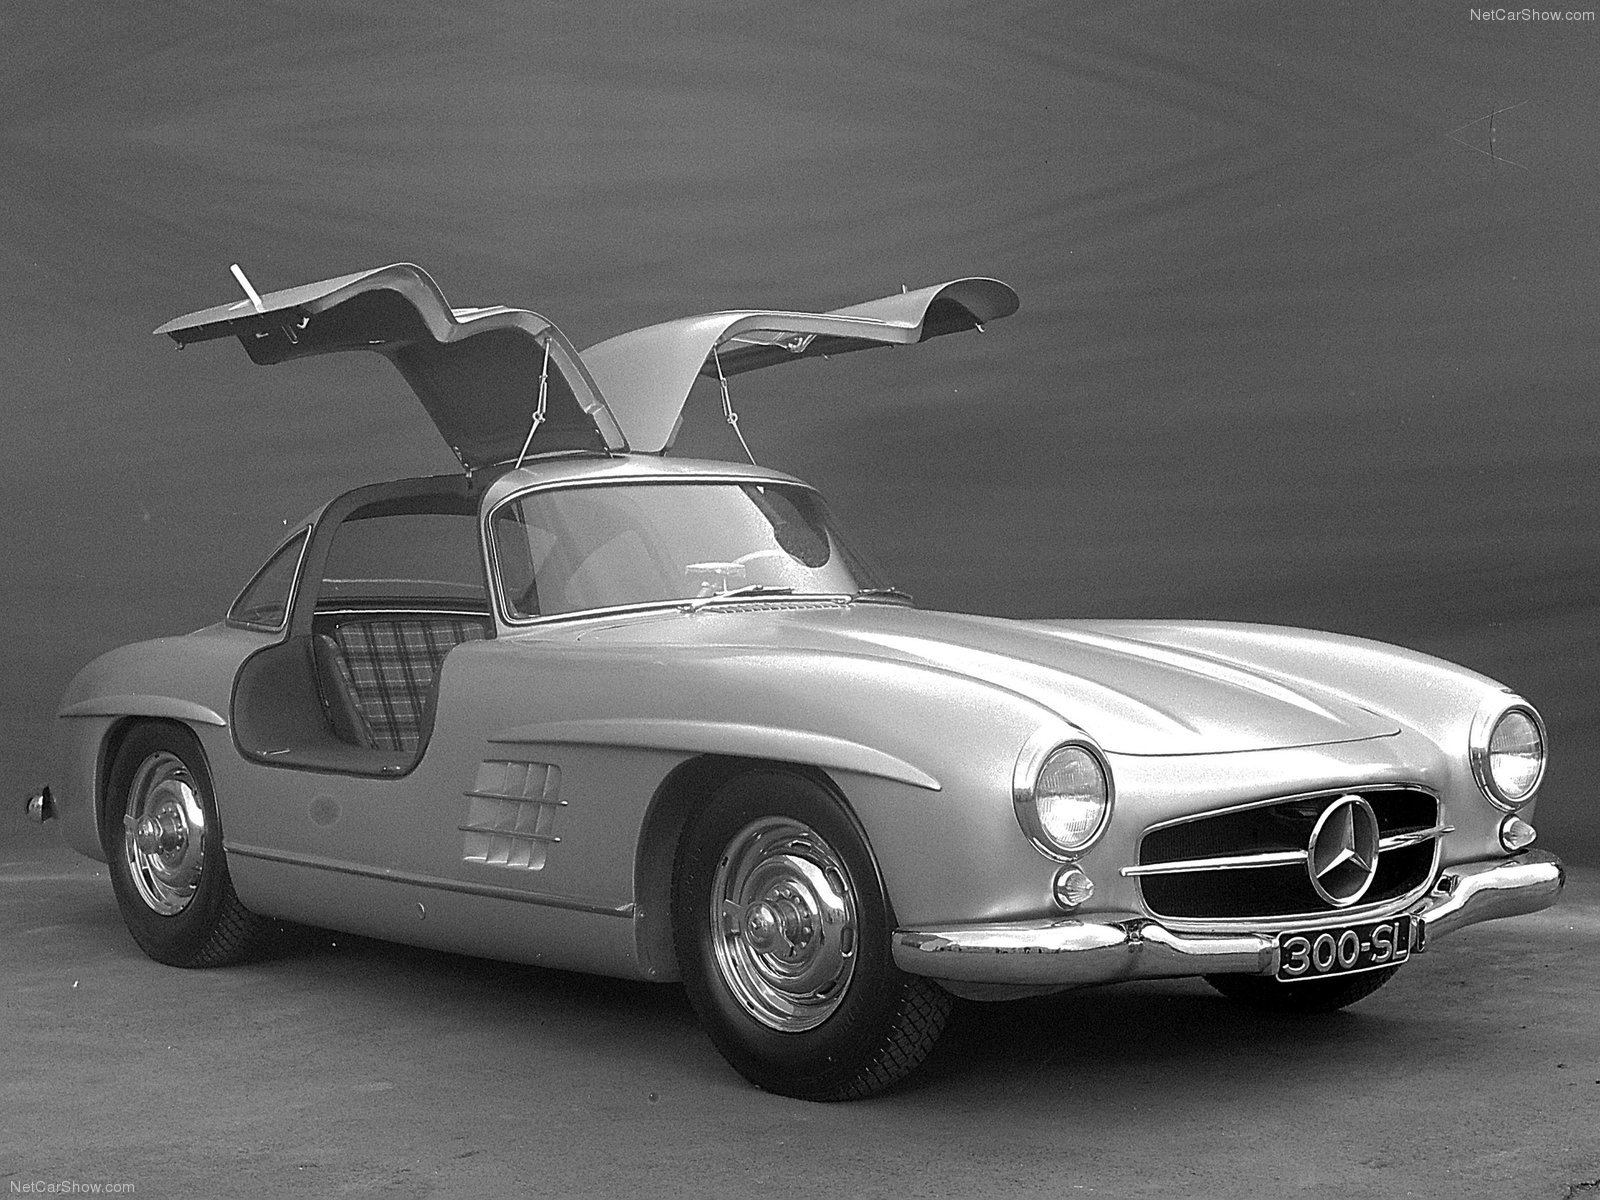 mercedes benz 300 sl gullwing classic cars 1954 wallpaper. Black Bedroom Furniture Sets. Home Design Ideas